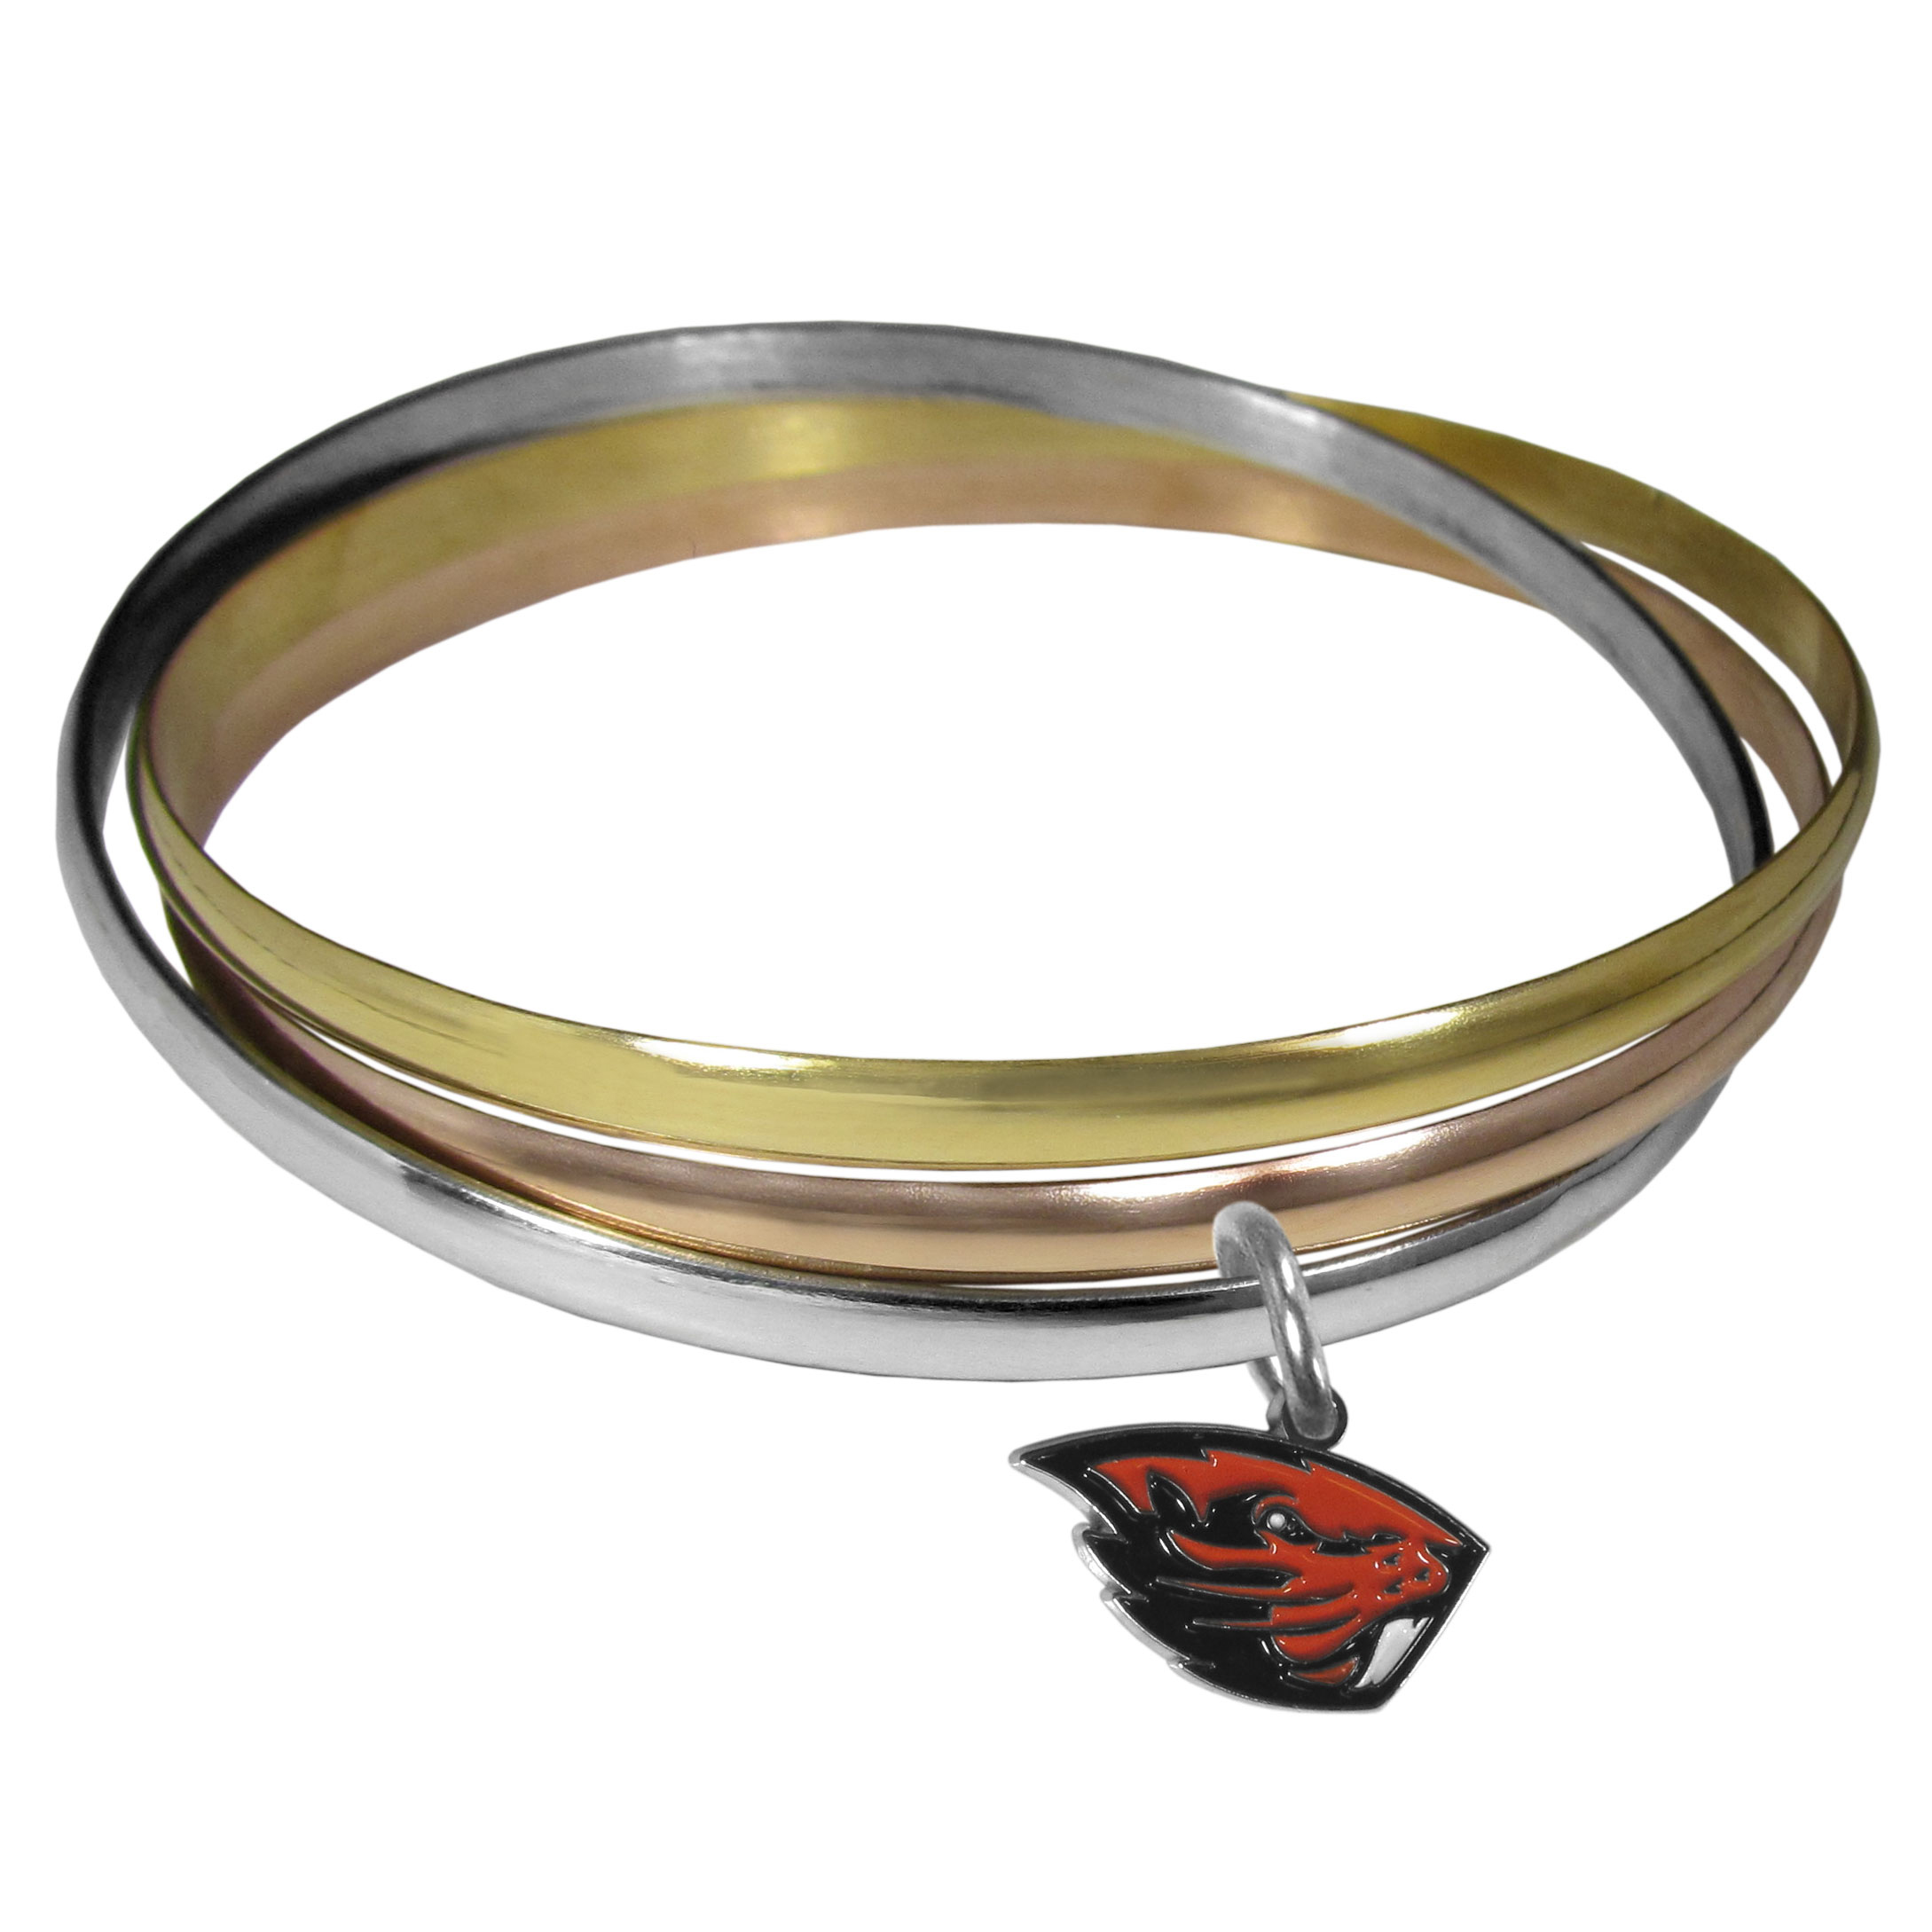 Oregon St. Beavers Tri-color Bangle Bracelet - These beautiful bangles come in a interlocking style and feature a fully cast Oregon St. Beavers charm with enameled team colors. The bracelet has a silver toned bangle, gold tone bangle and brass toned bangle.